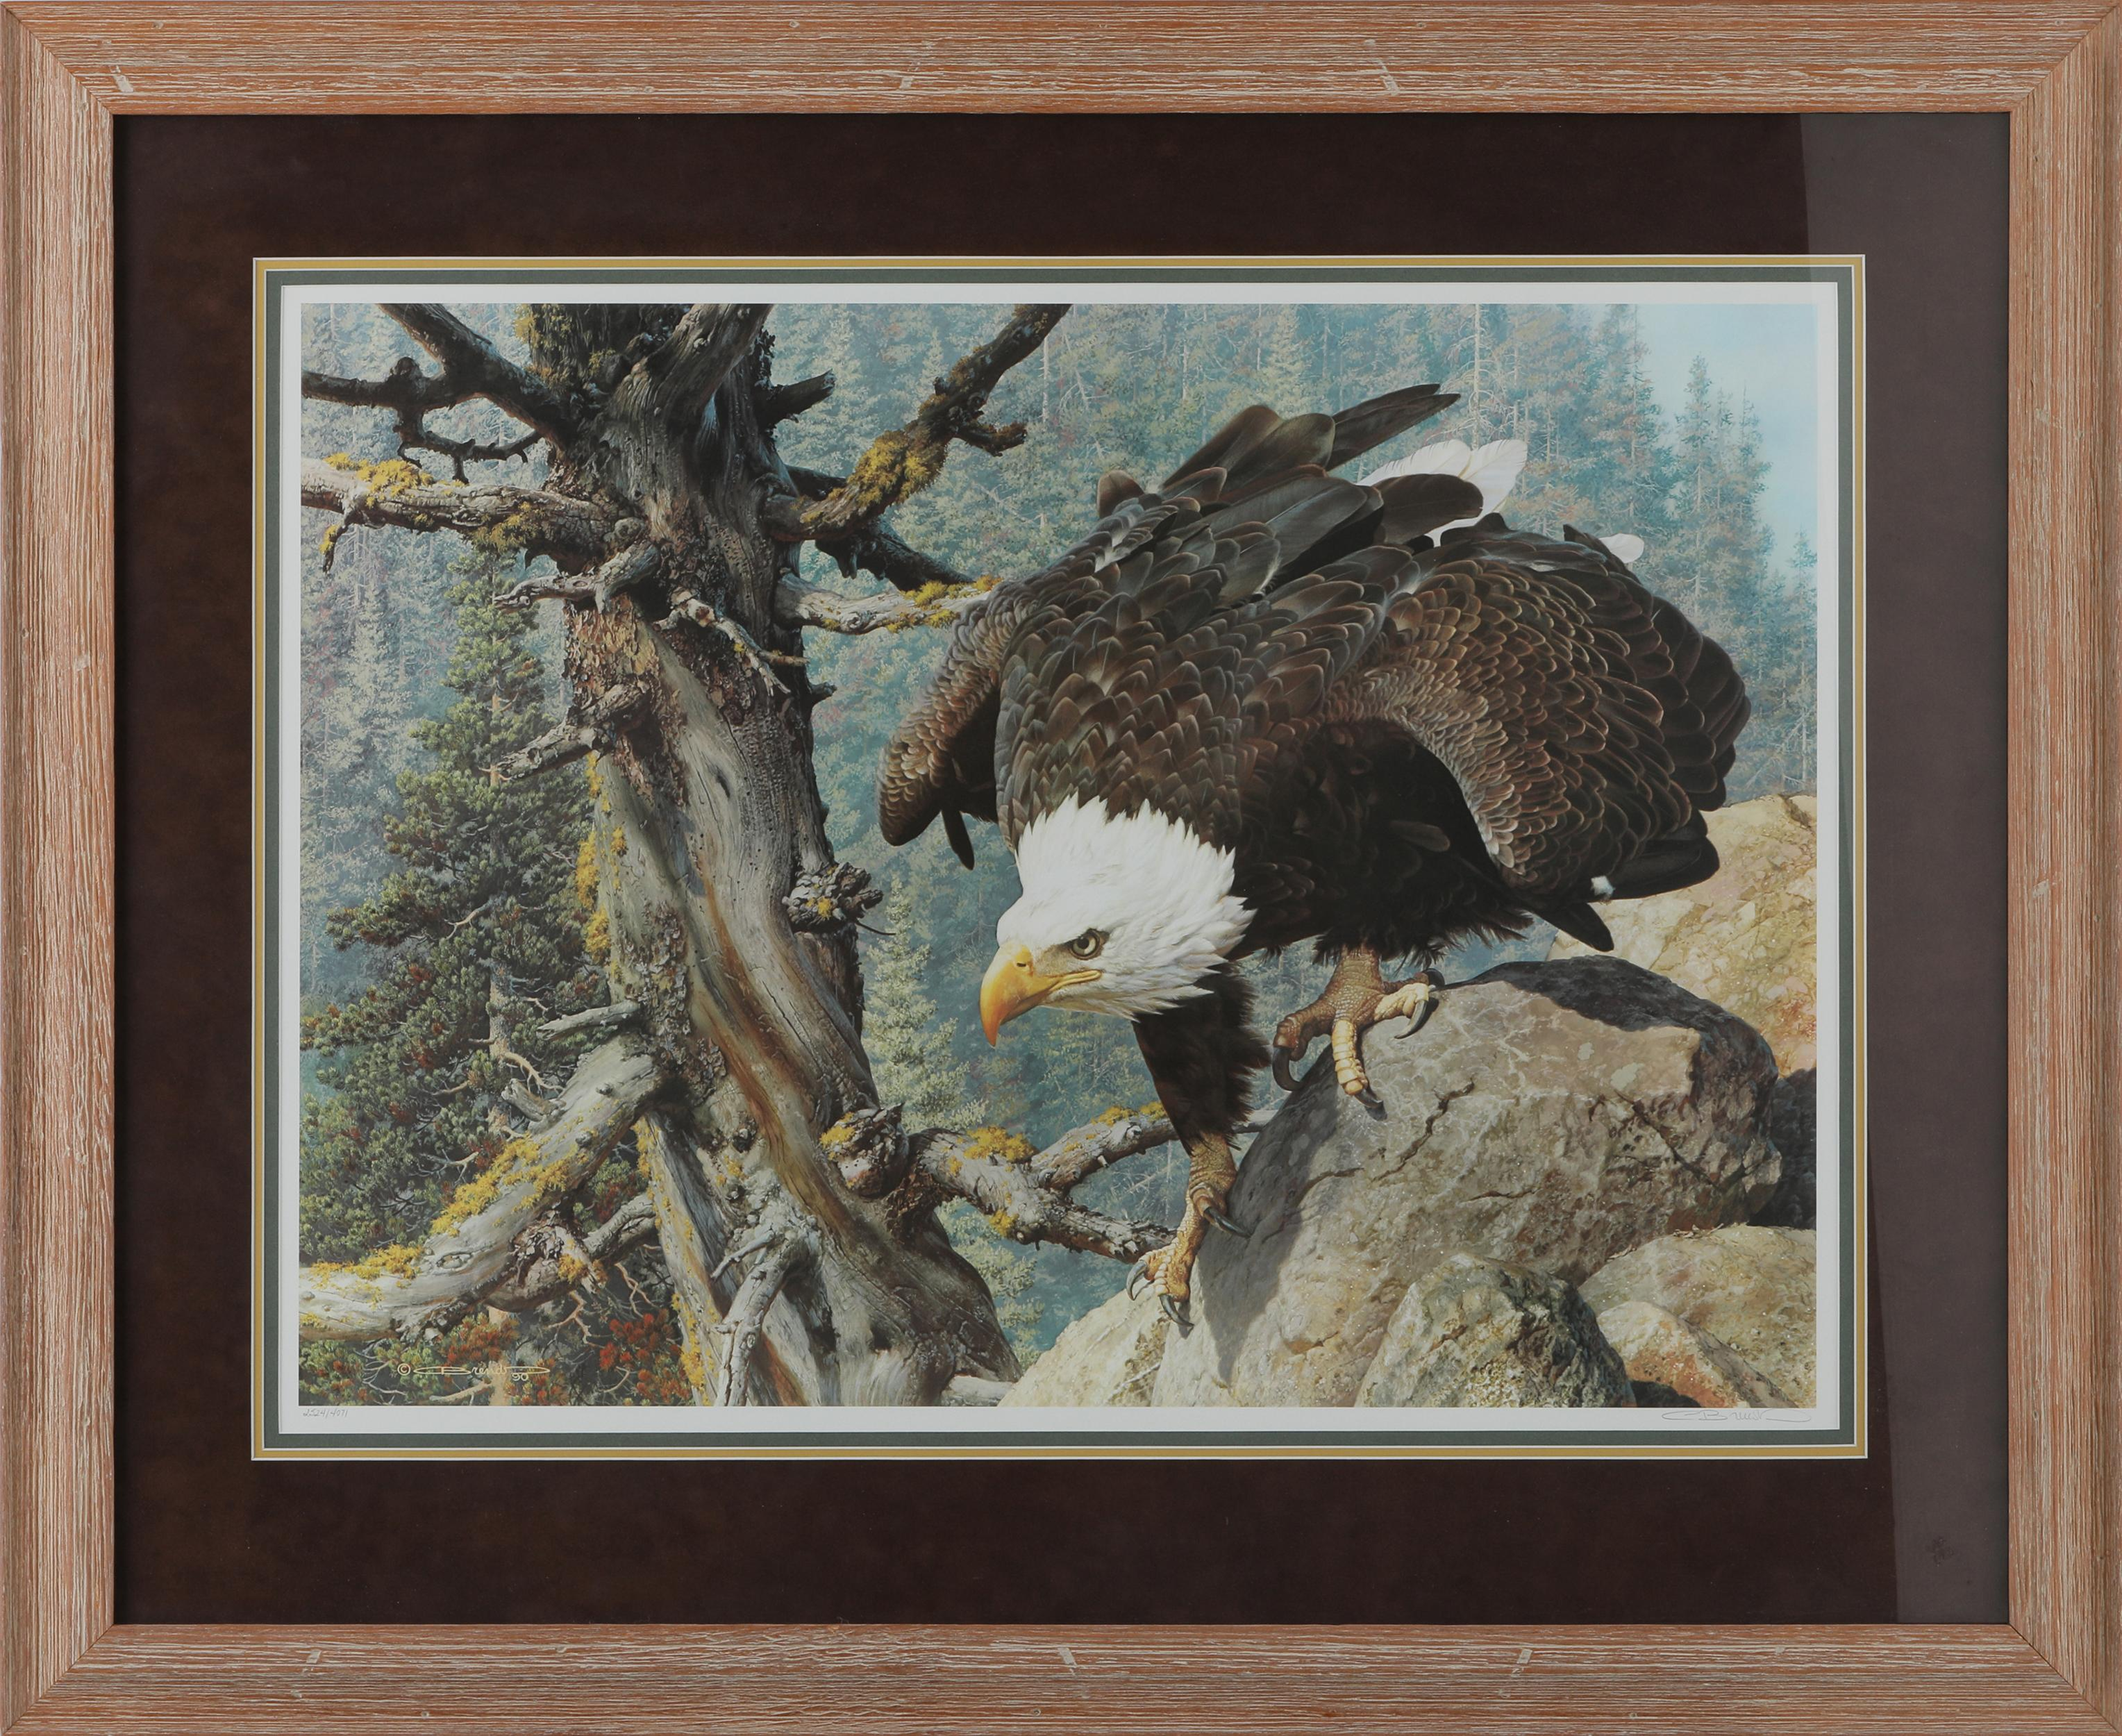 """Carl Brender's """"The Monarch Is Alive"""" Framed Limited Edition Print"""